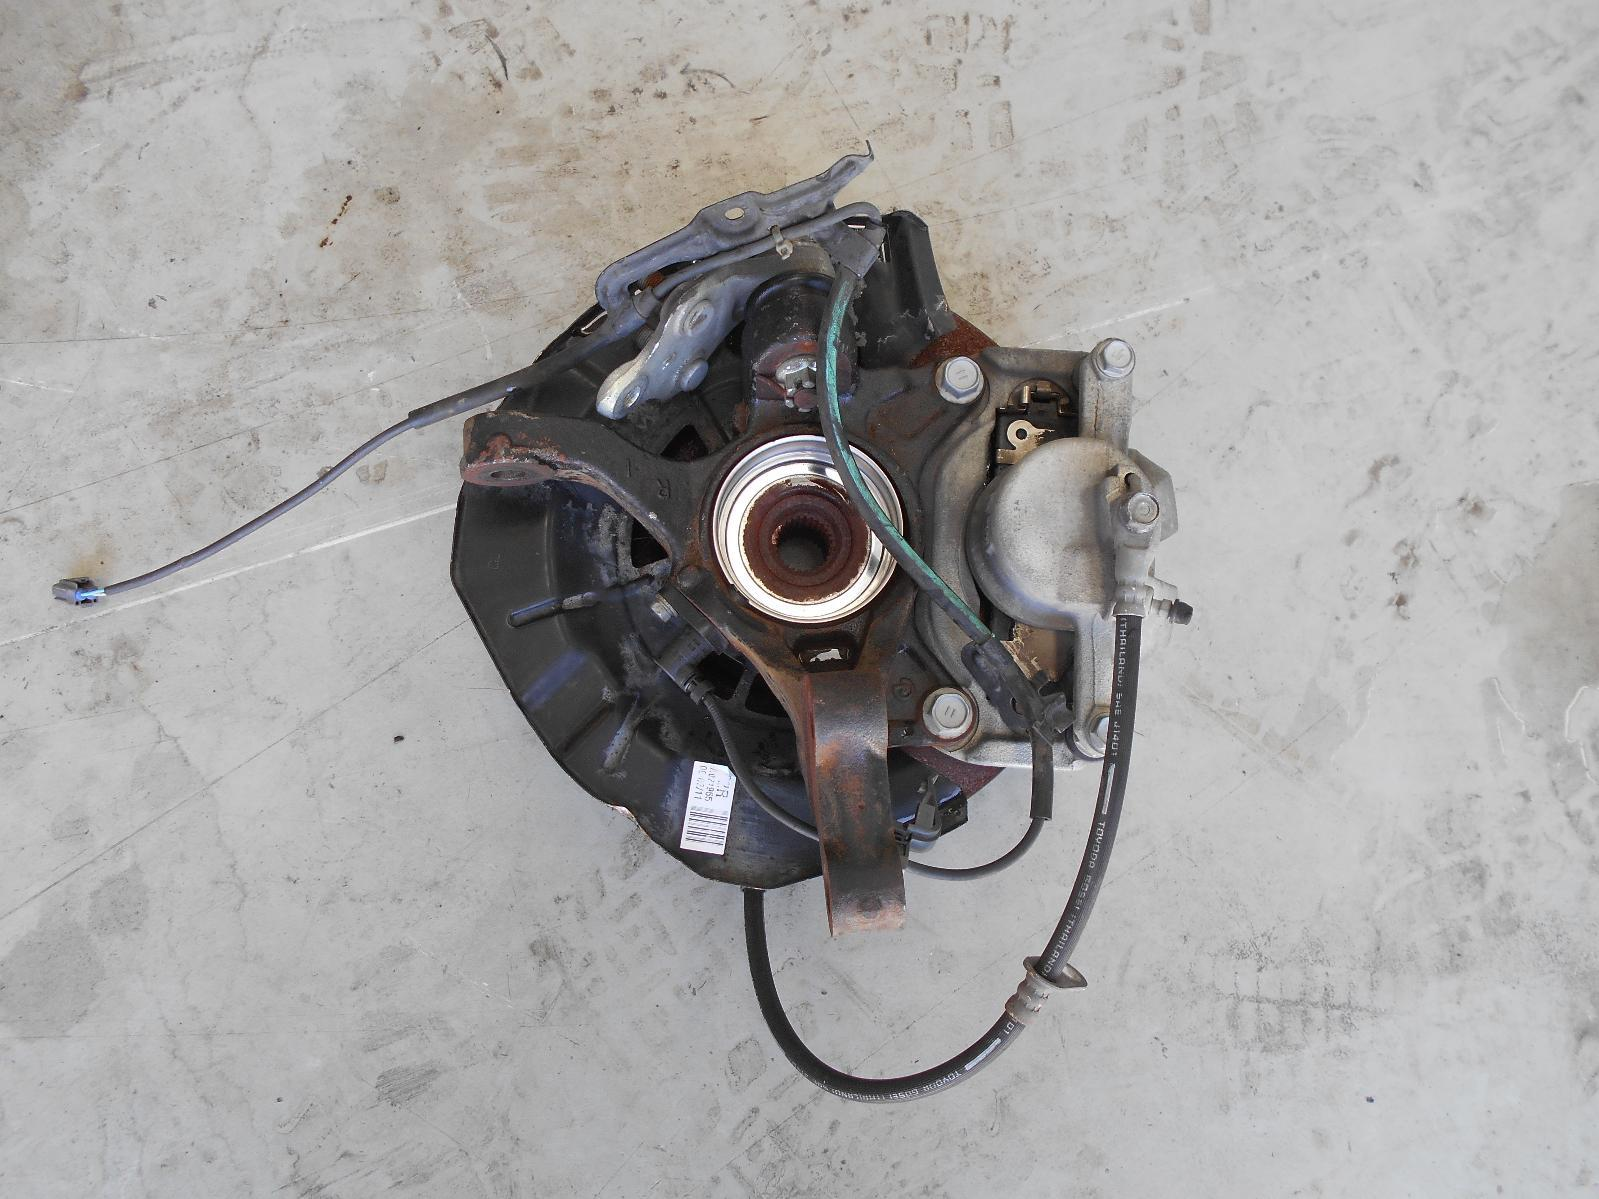 TOYOTA CAMRY, Right Front Hub Assembly, AHV40, HYBRID, 12/09-11/11